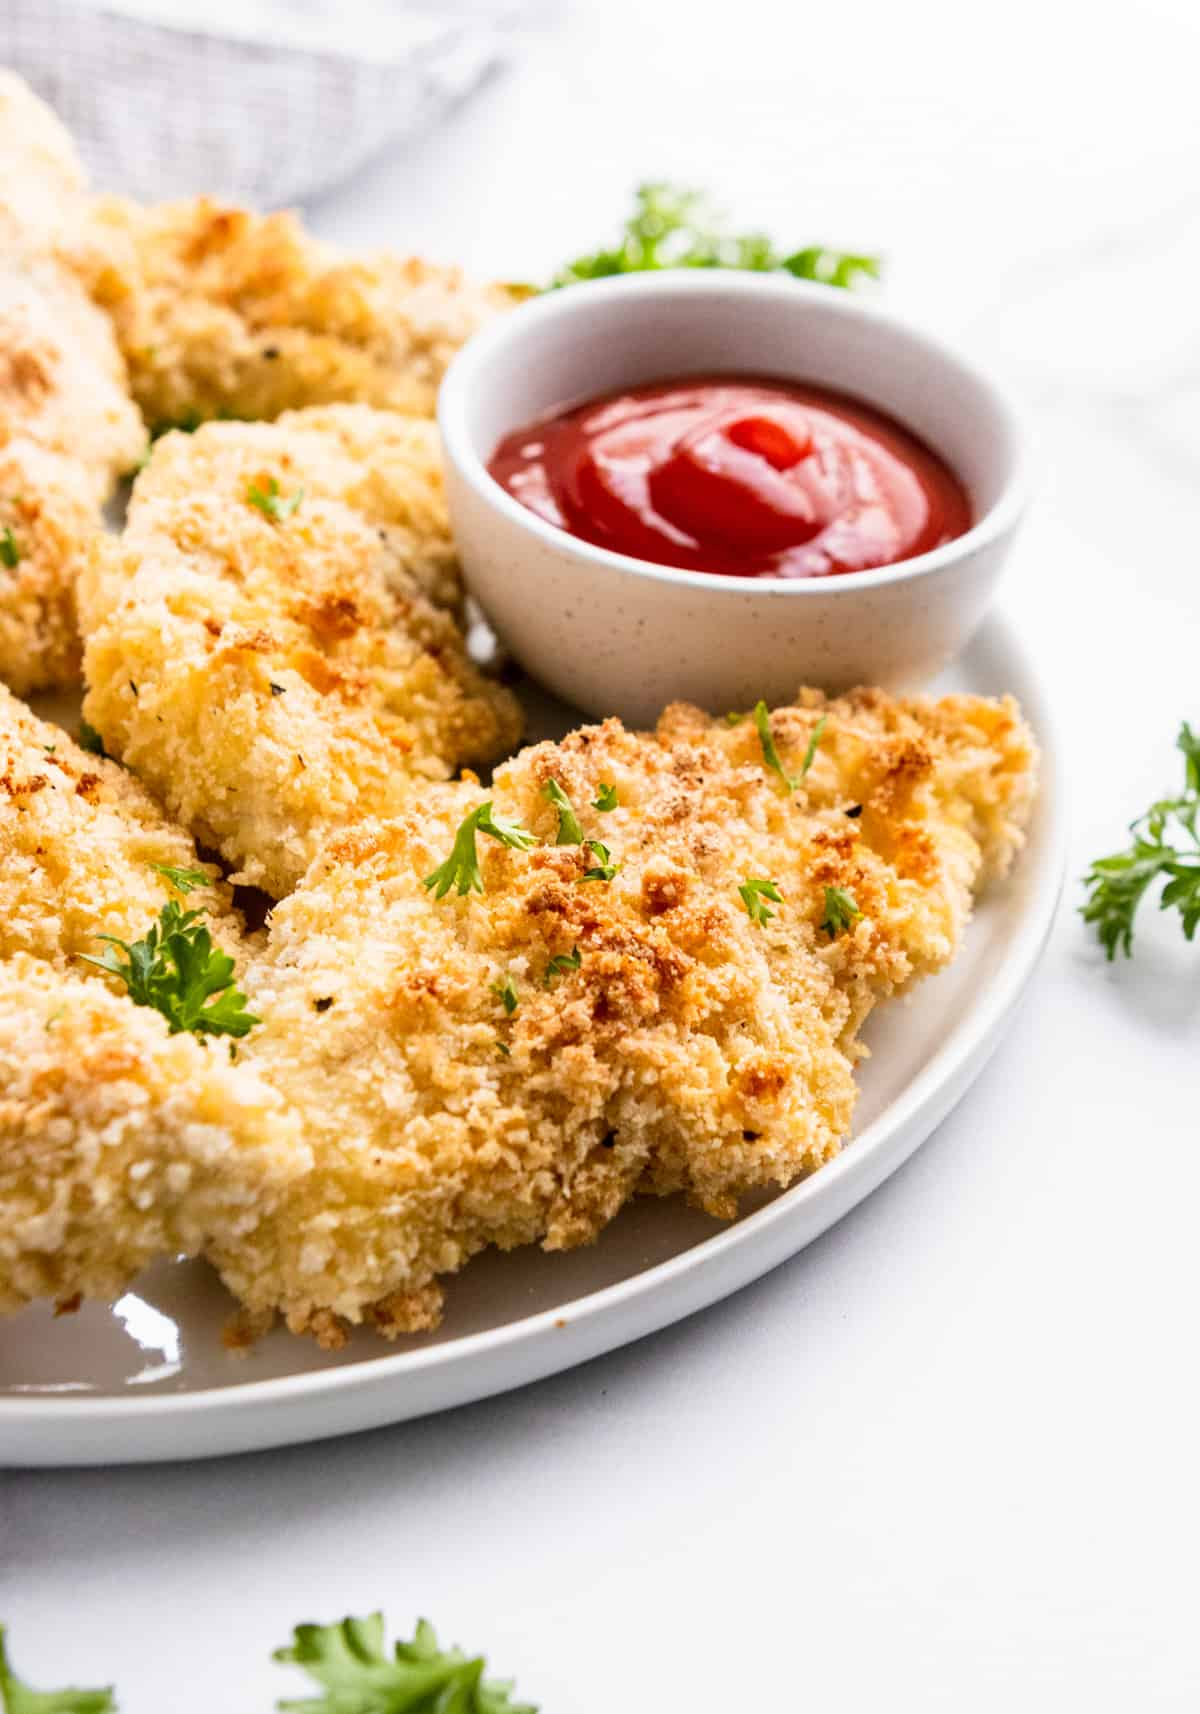 Cornmeal baked breaded chicken tenders on white plate with ketchup.